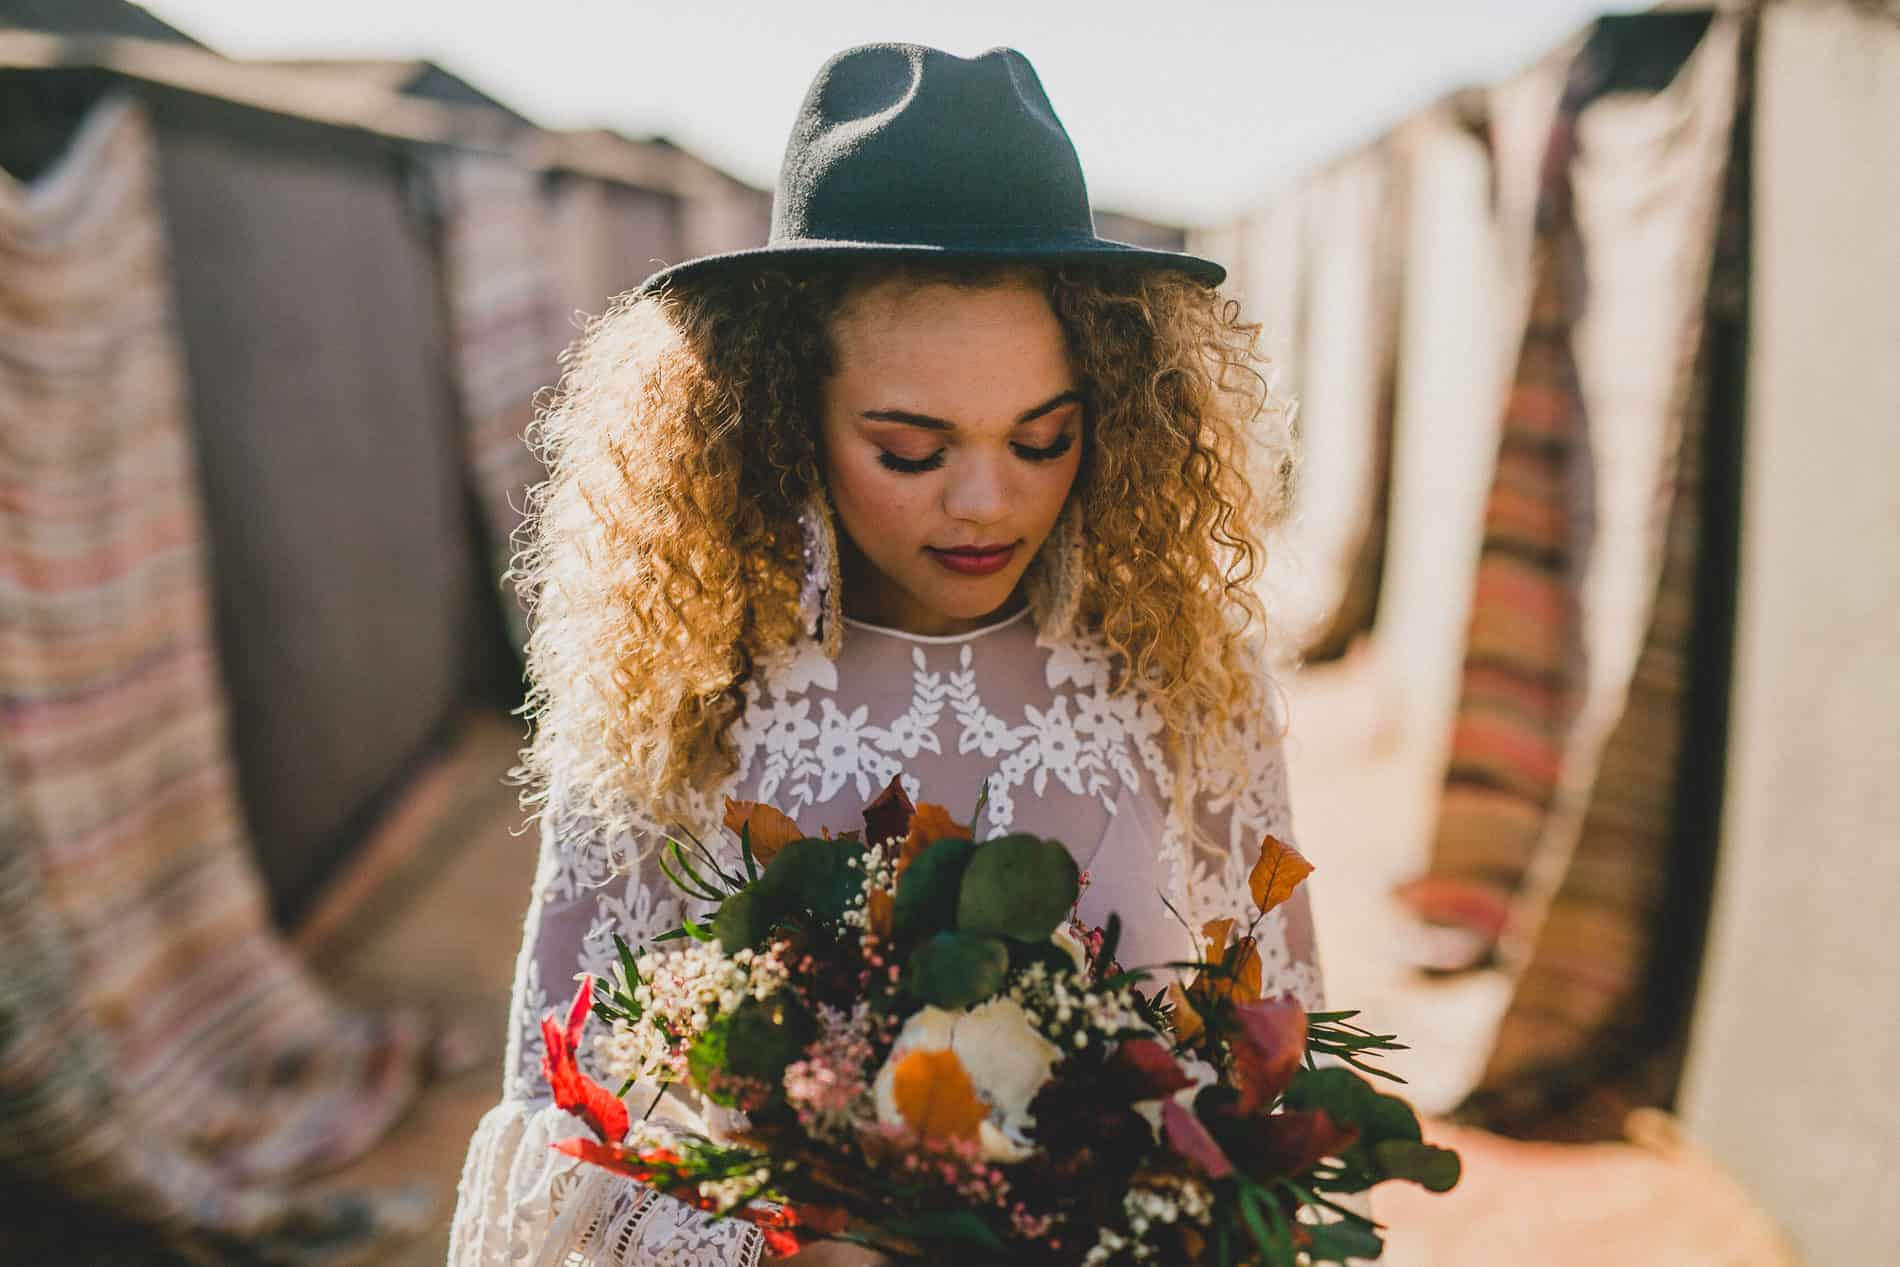 model with bridal dress in a berber tent getting ready for a shoot in a wedding photography workshop